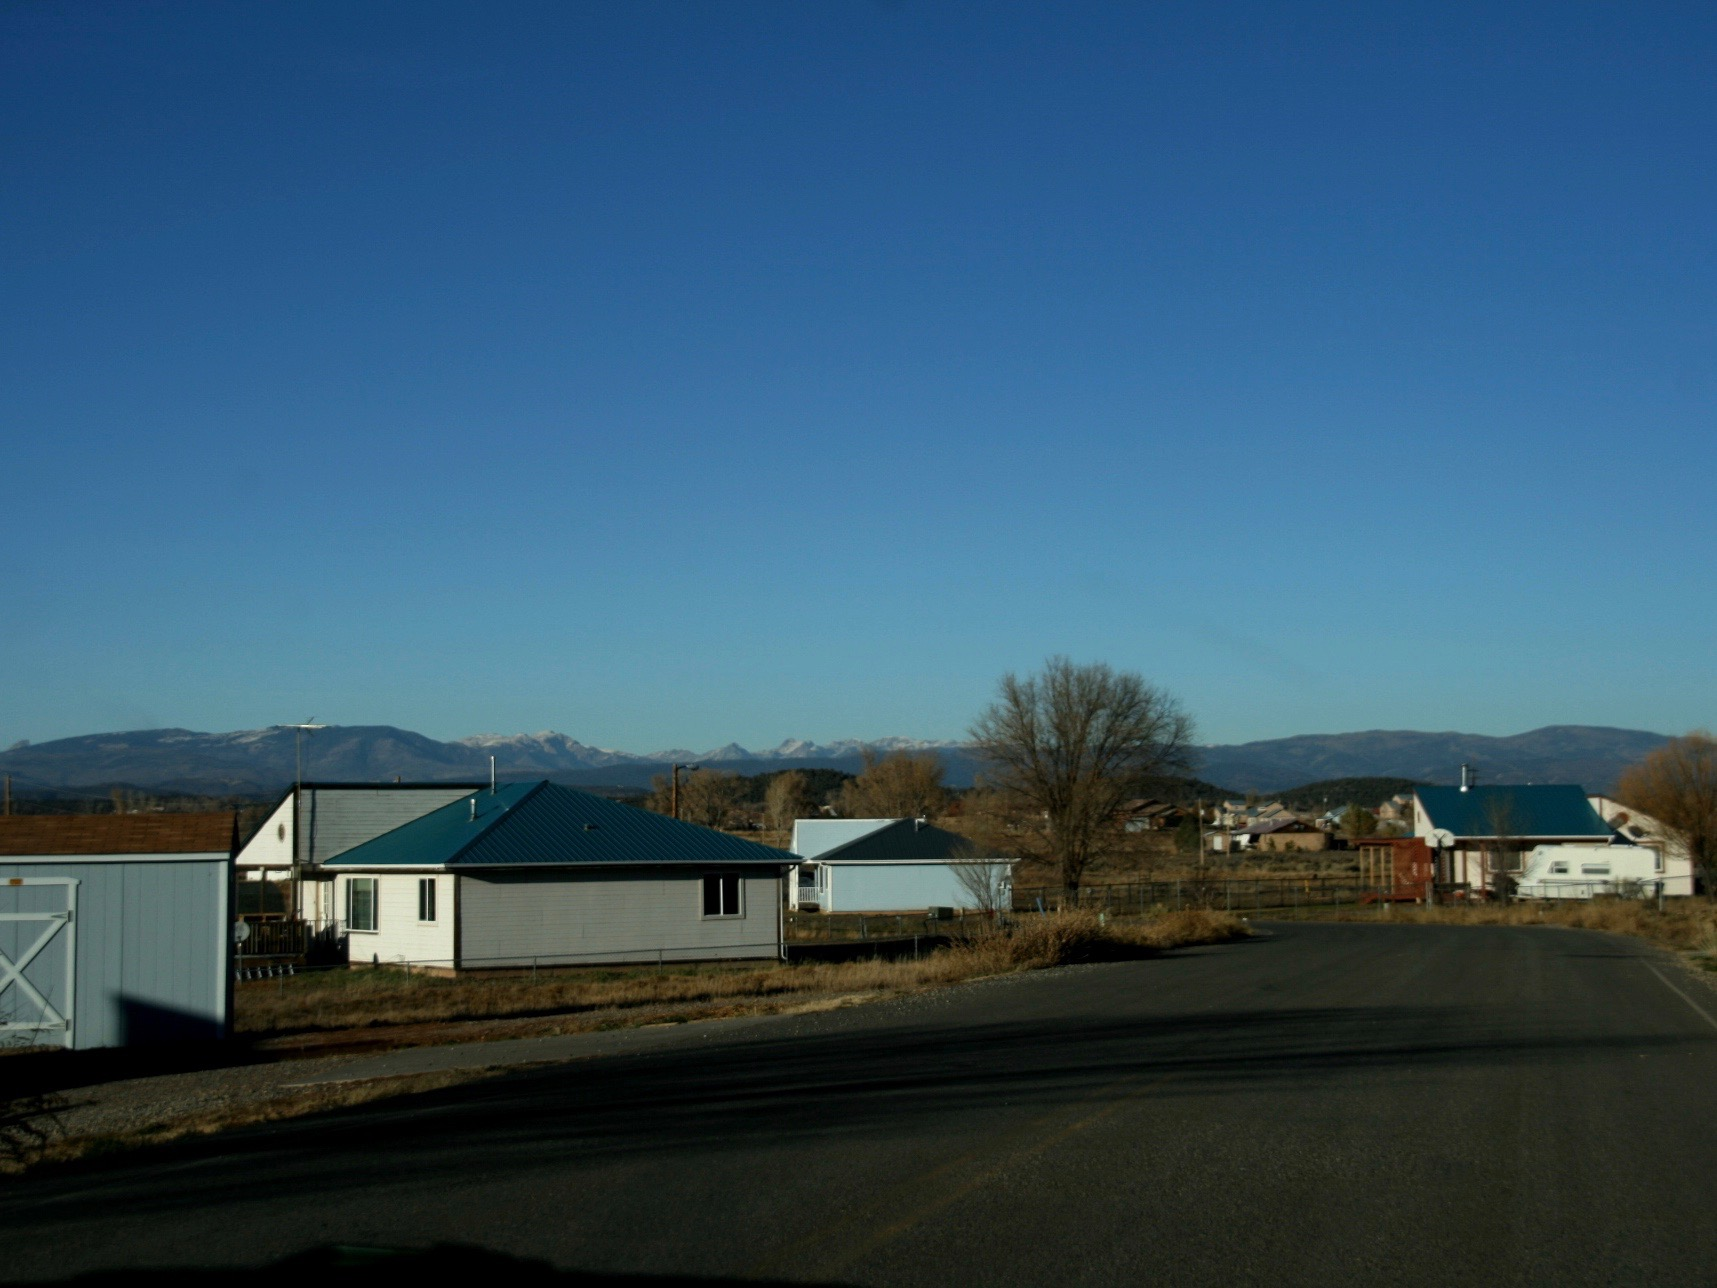 Southern Ute Tribe pressured to share more of $126M settlement